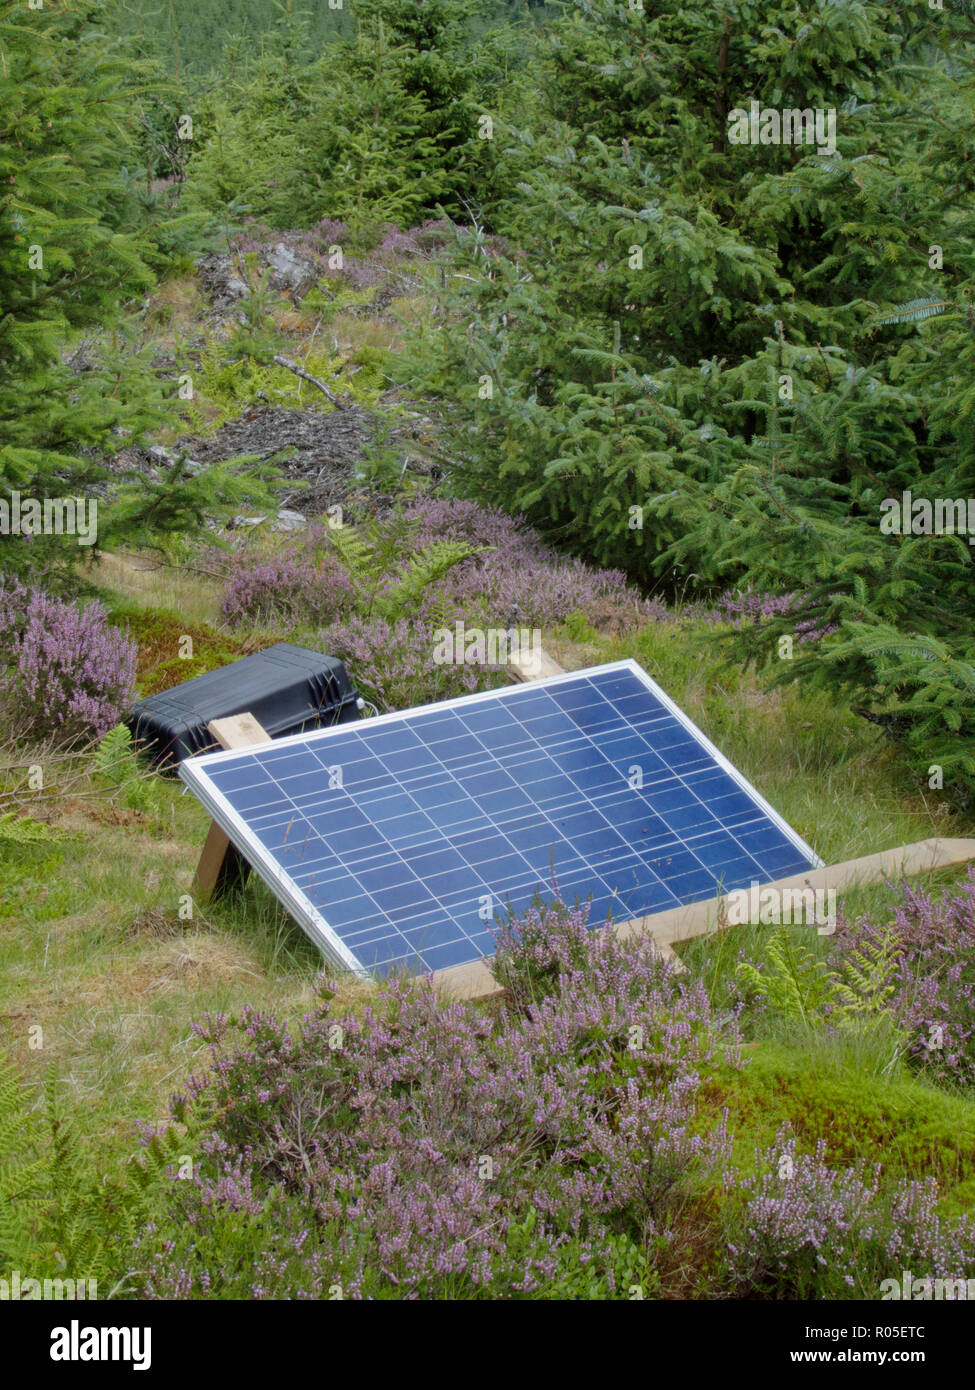 Mobile Solar Panel Generating Off Grid Electricity in a Forest, UK - Stock Image